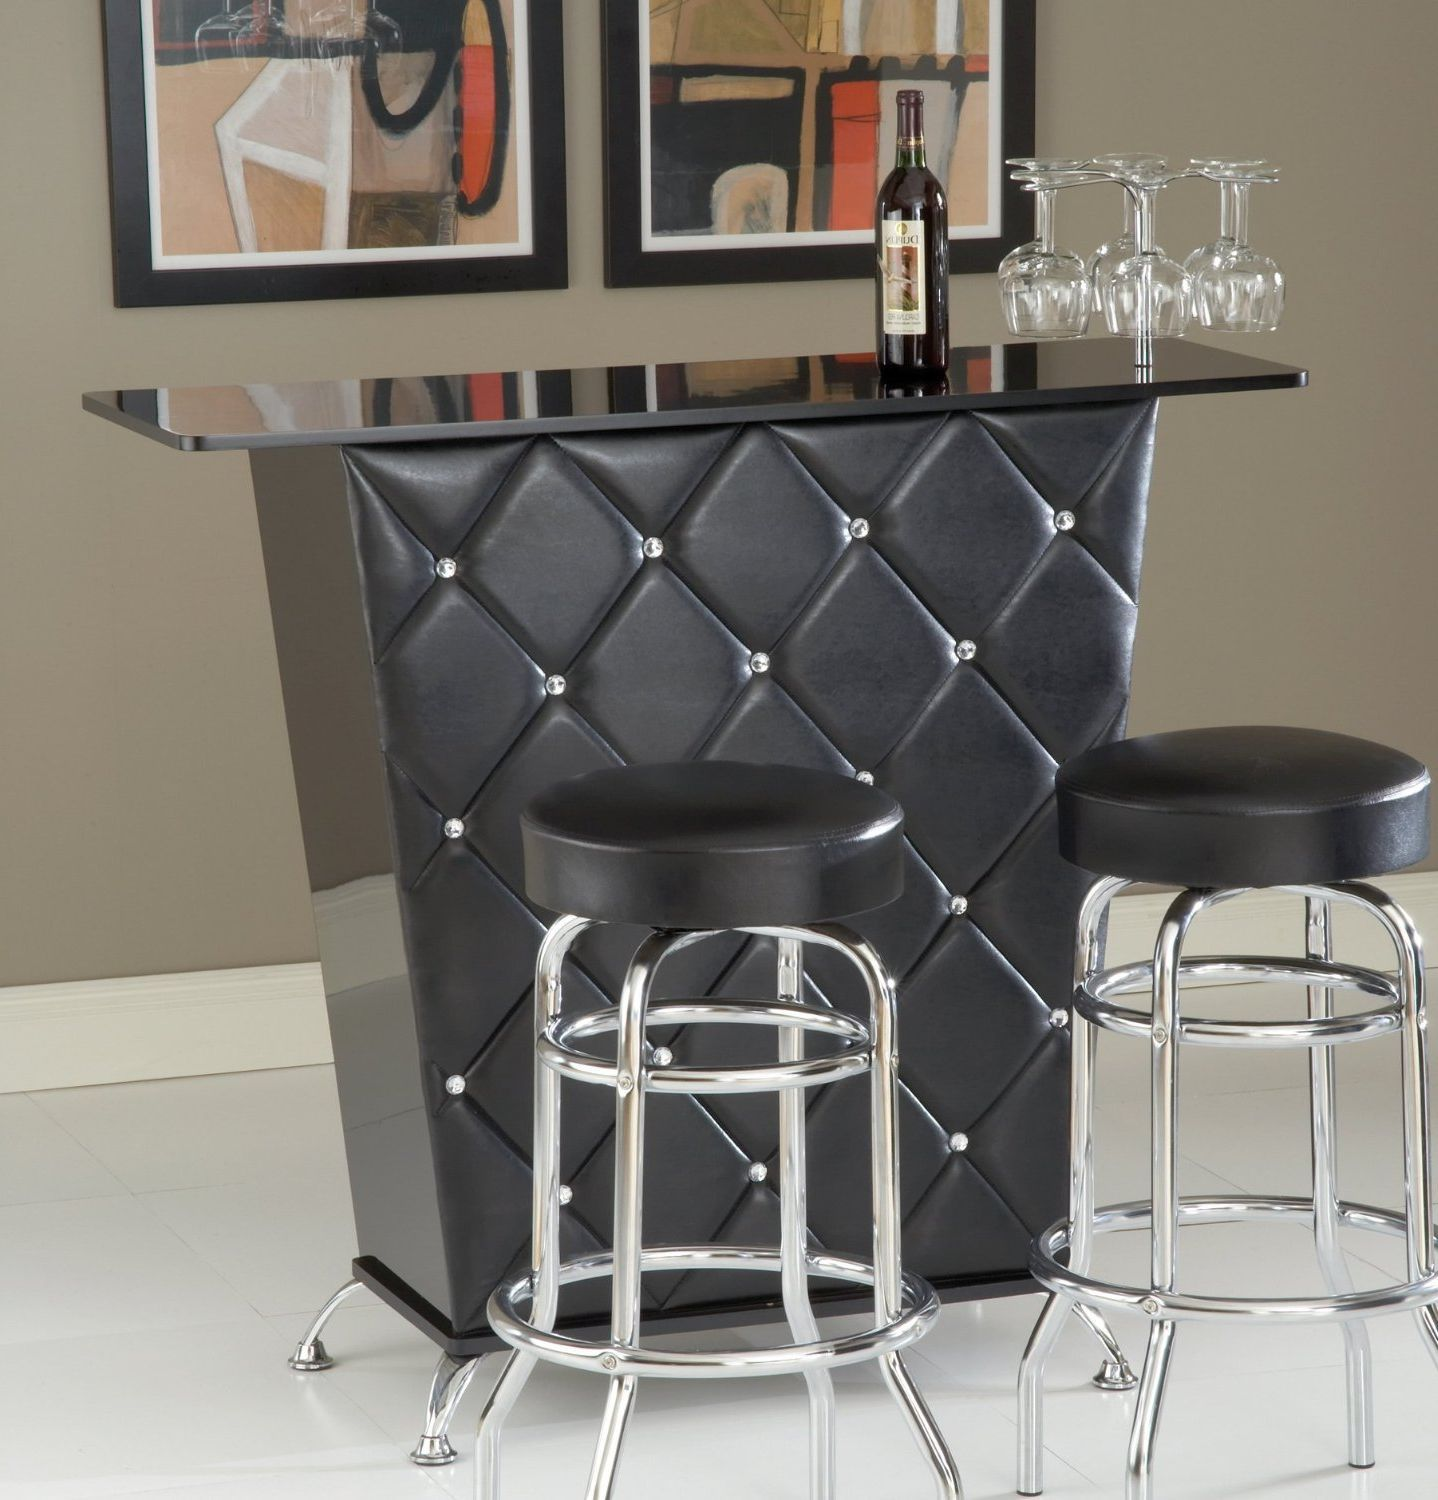 OP: Leather Table Cover And Contemporary Pictures To Decorate Small Modern Home  Bar , Ideas For Decoration Home Bars In Interior Decor Ideas Category